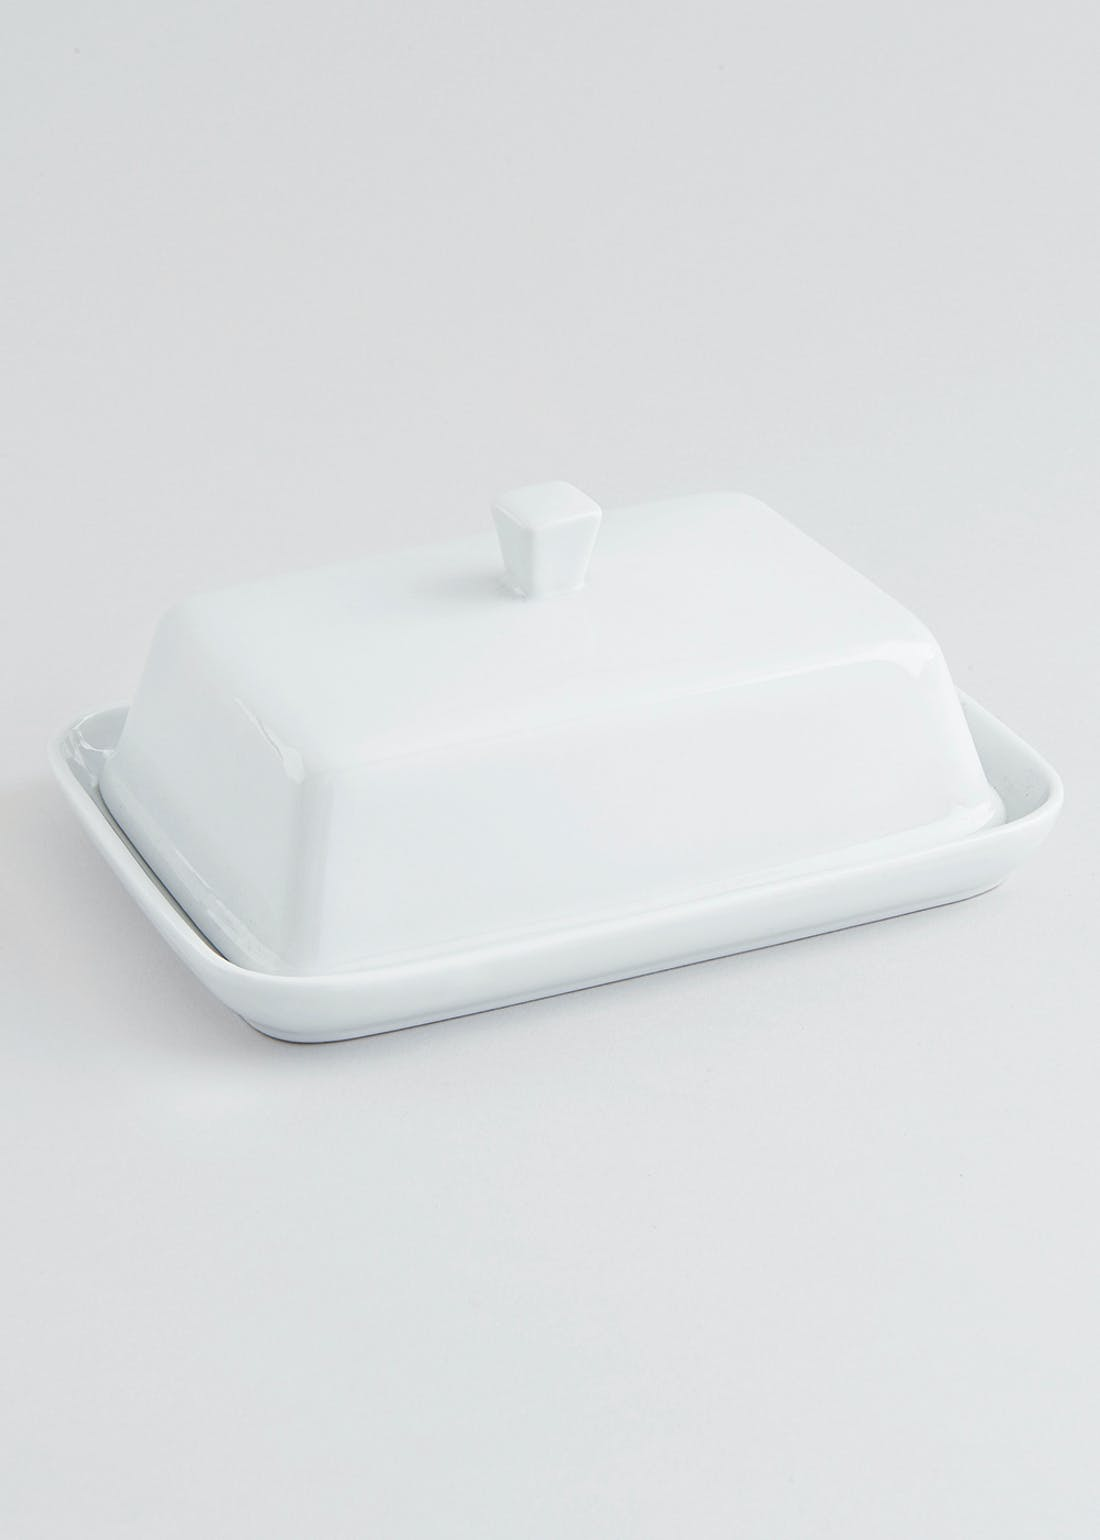 Chicago Square Butter Dish (18cm x 14cm x 9cm)